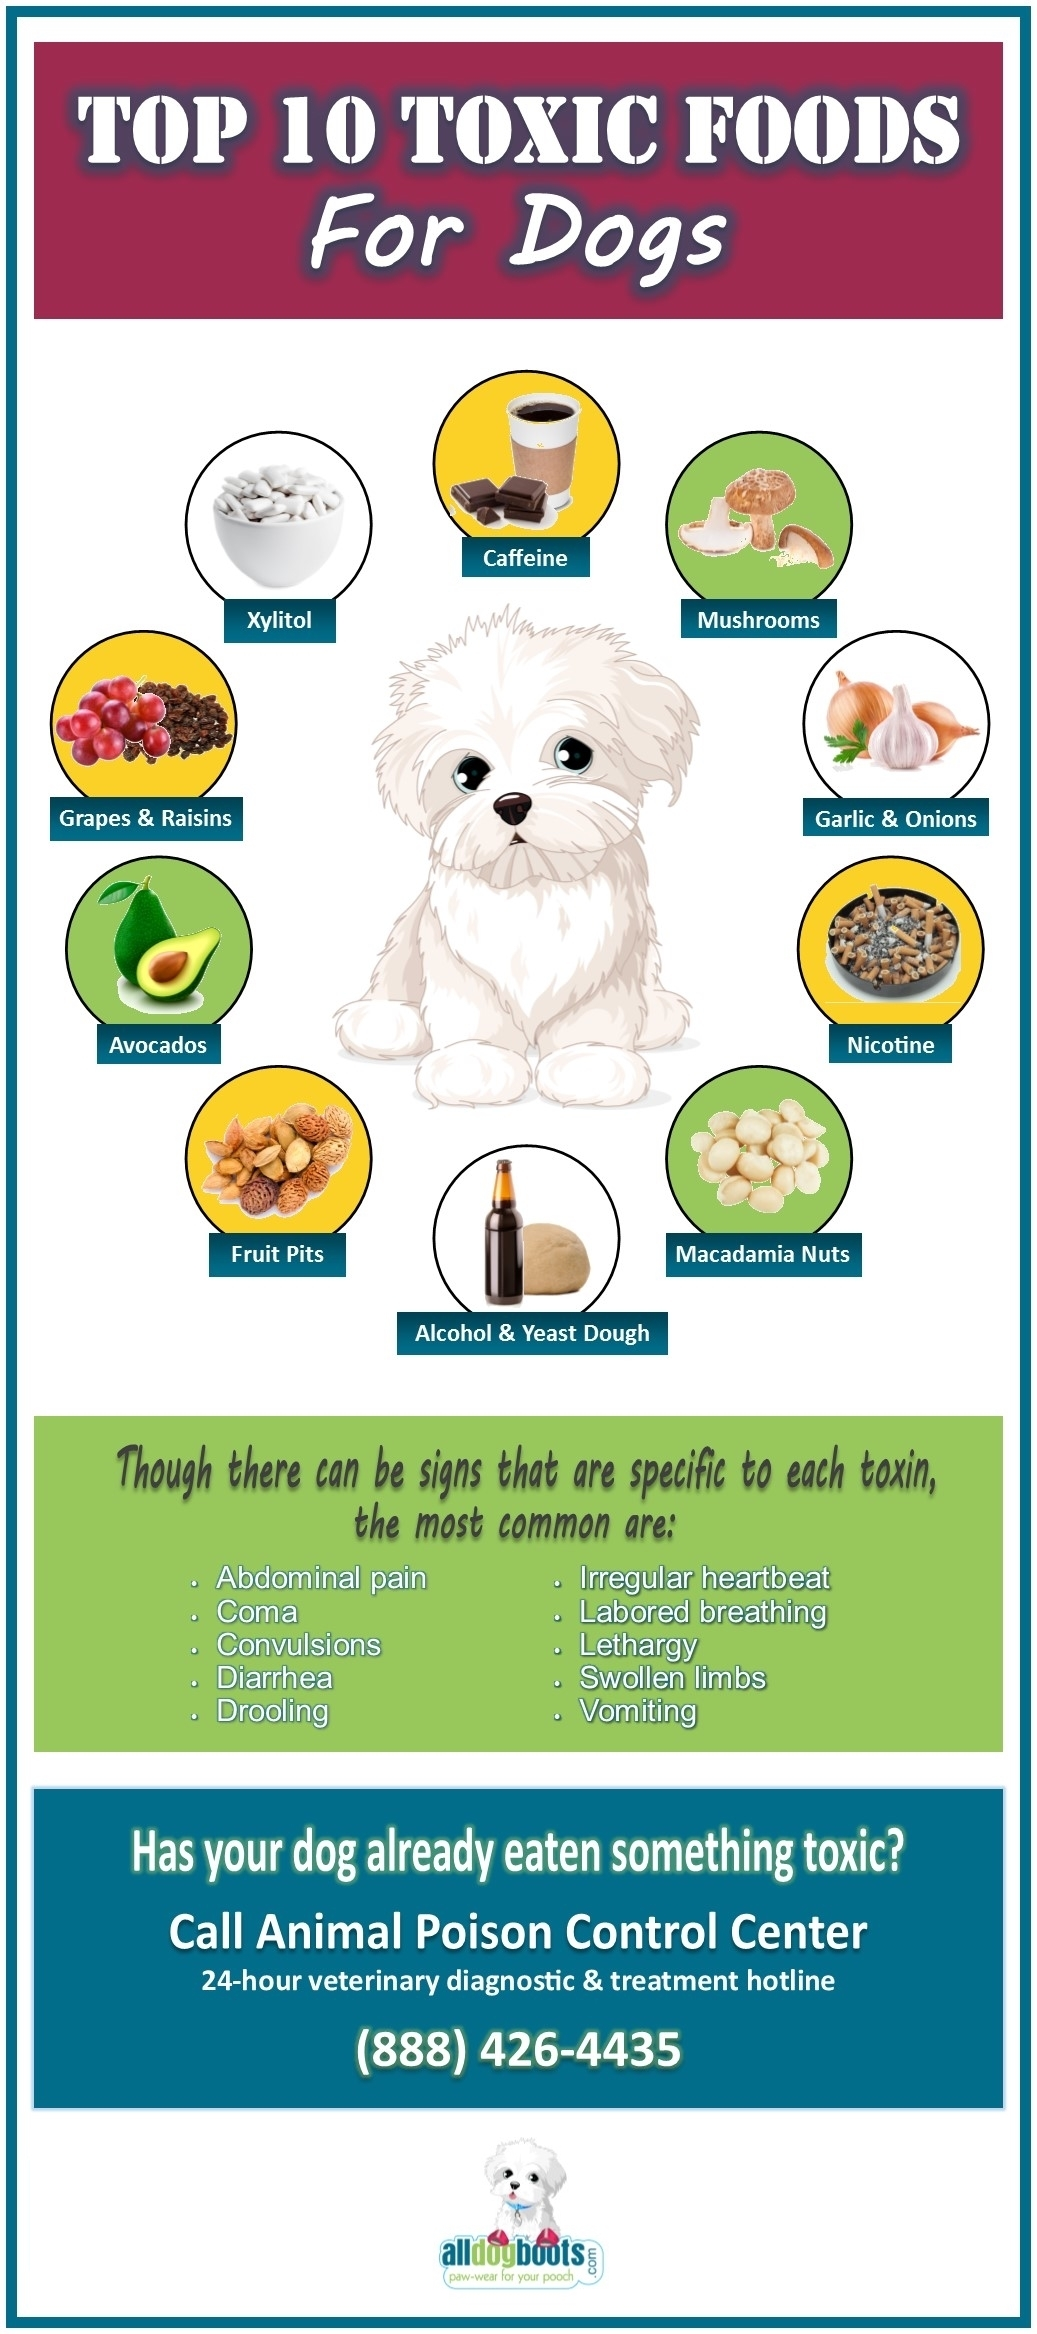 Food That Are Toxic to Dogs - 10 Foods